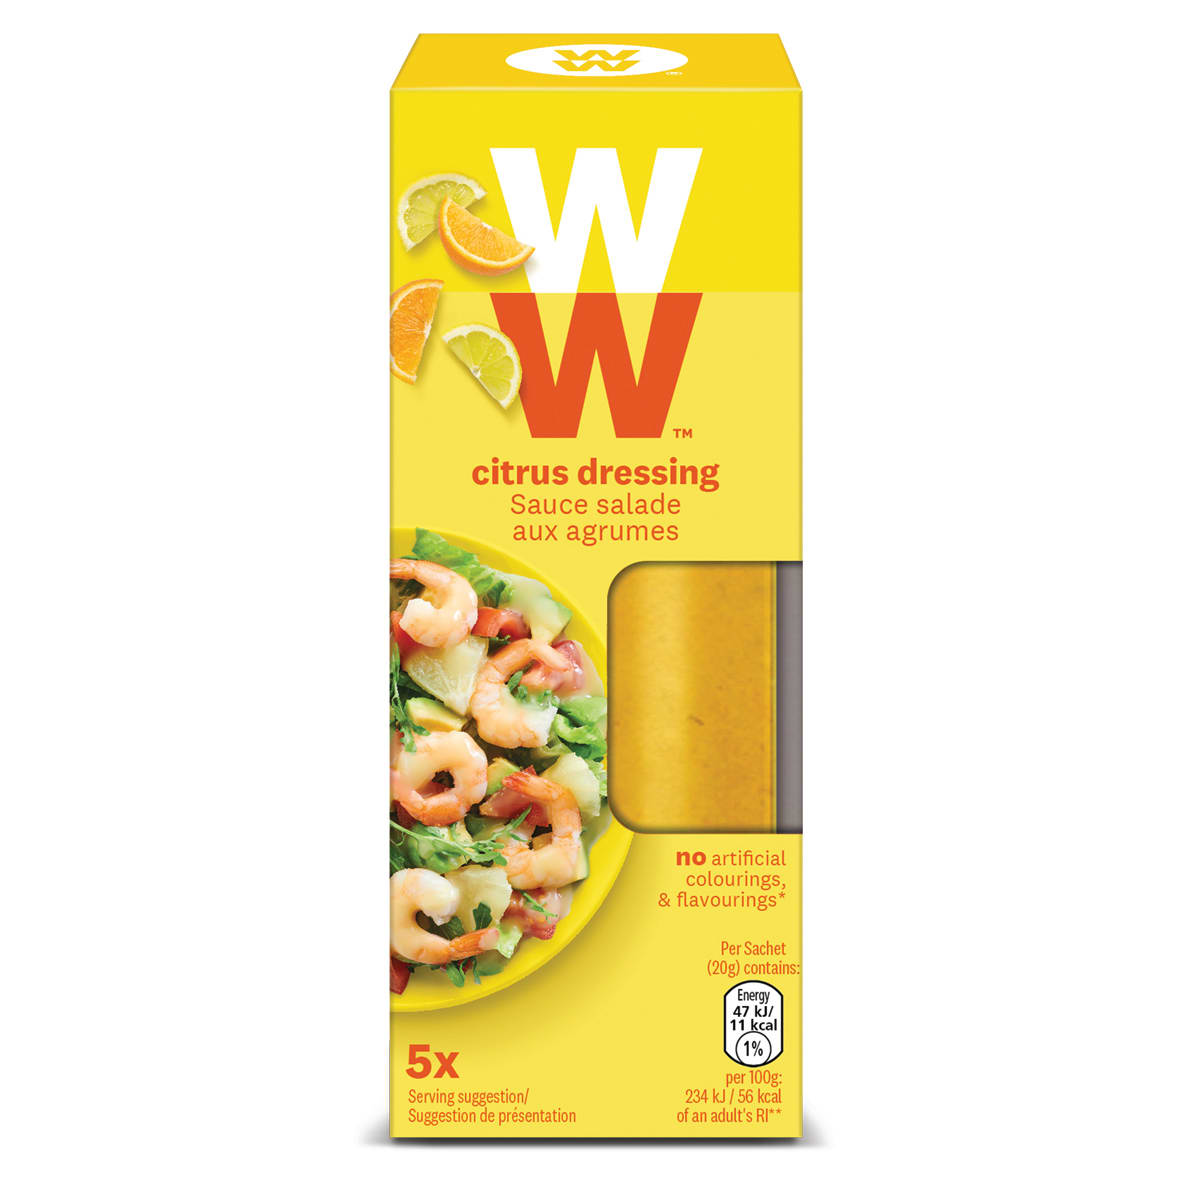 Box of 5 sachets, refreshingly zesty WW Citrus Dressing, instant flavor booster, perfect for salads, 1 SmartPoints value each